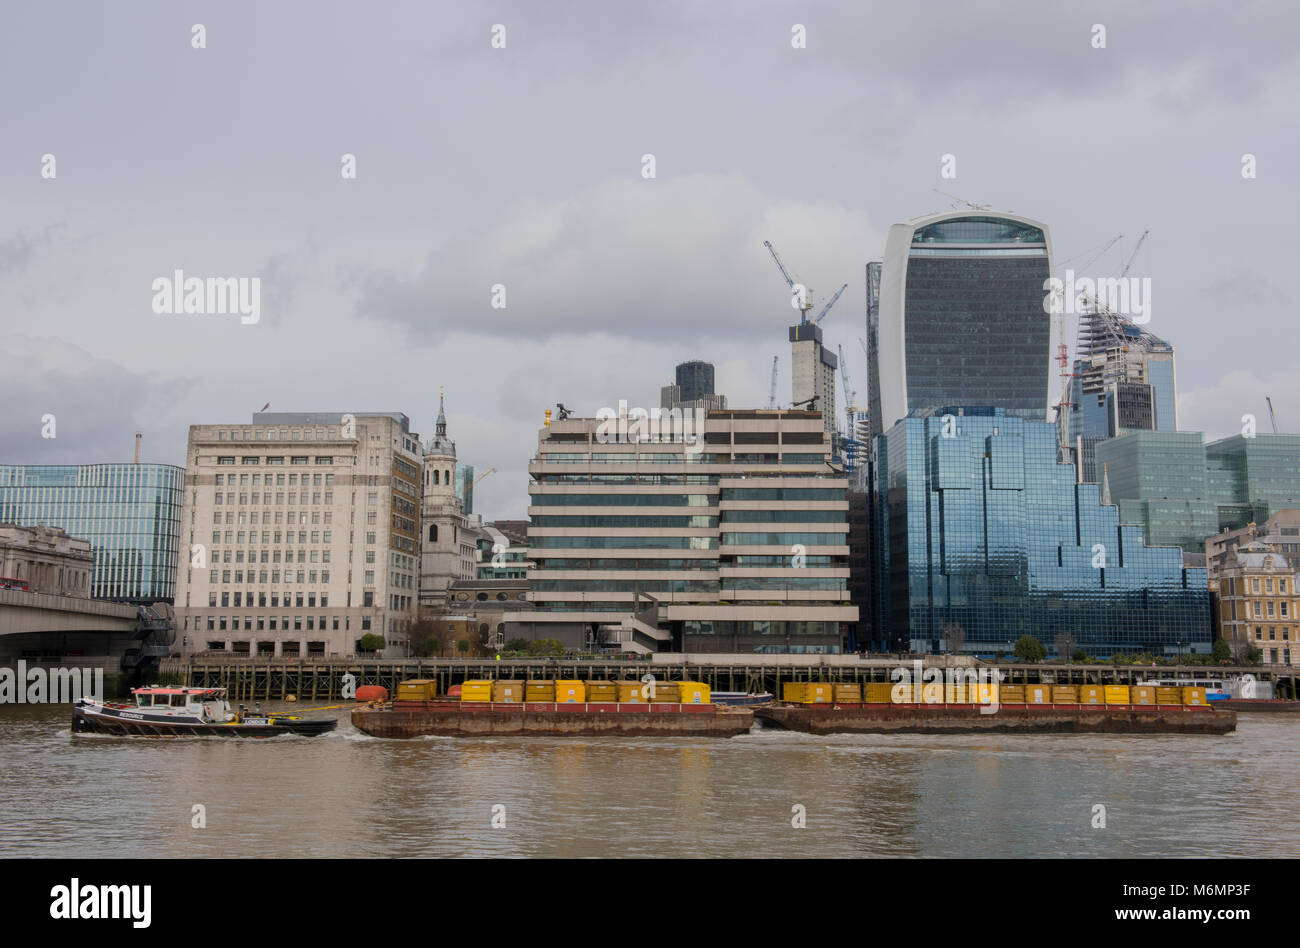 A tug boat on the river thames in central london passing the iconic buildings of the square mile financial district - Stock Image